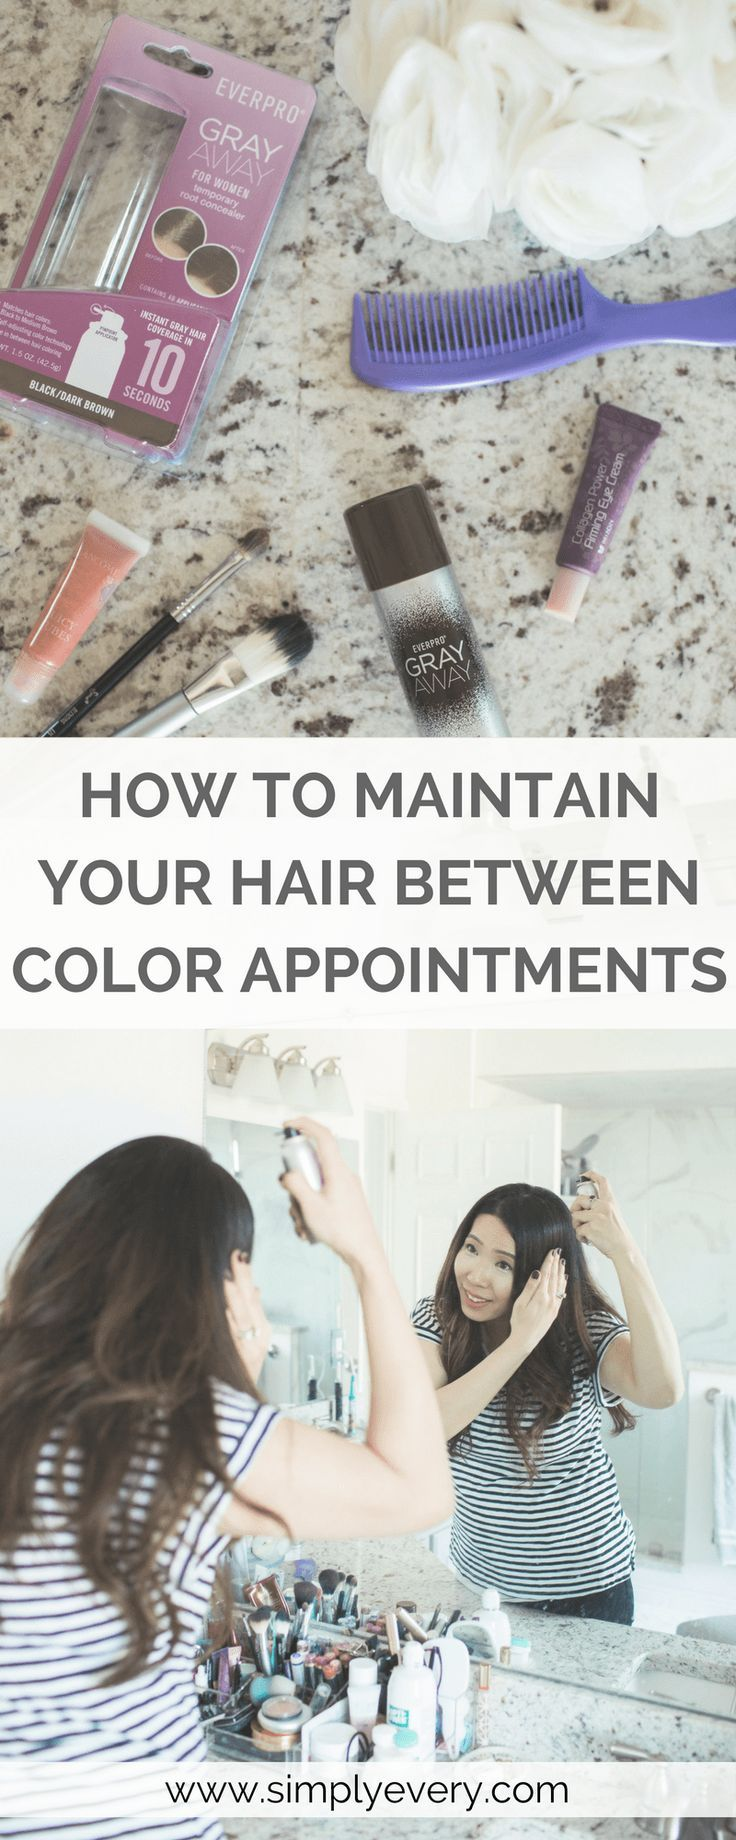 How to Maintain Your Hair Between Color Treatments, #haircare, #beautytips, #coloredhair, beauty, hair care, easy hair for busy moms, beauty hacks, self care